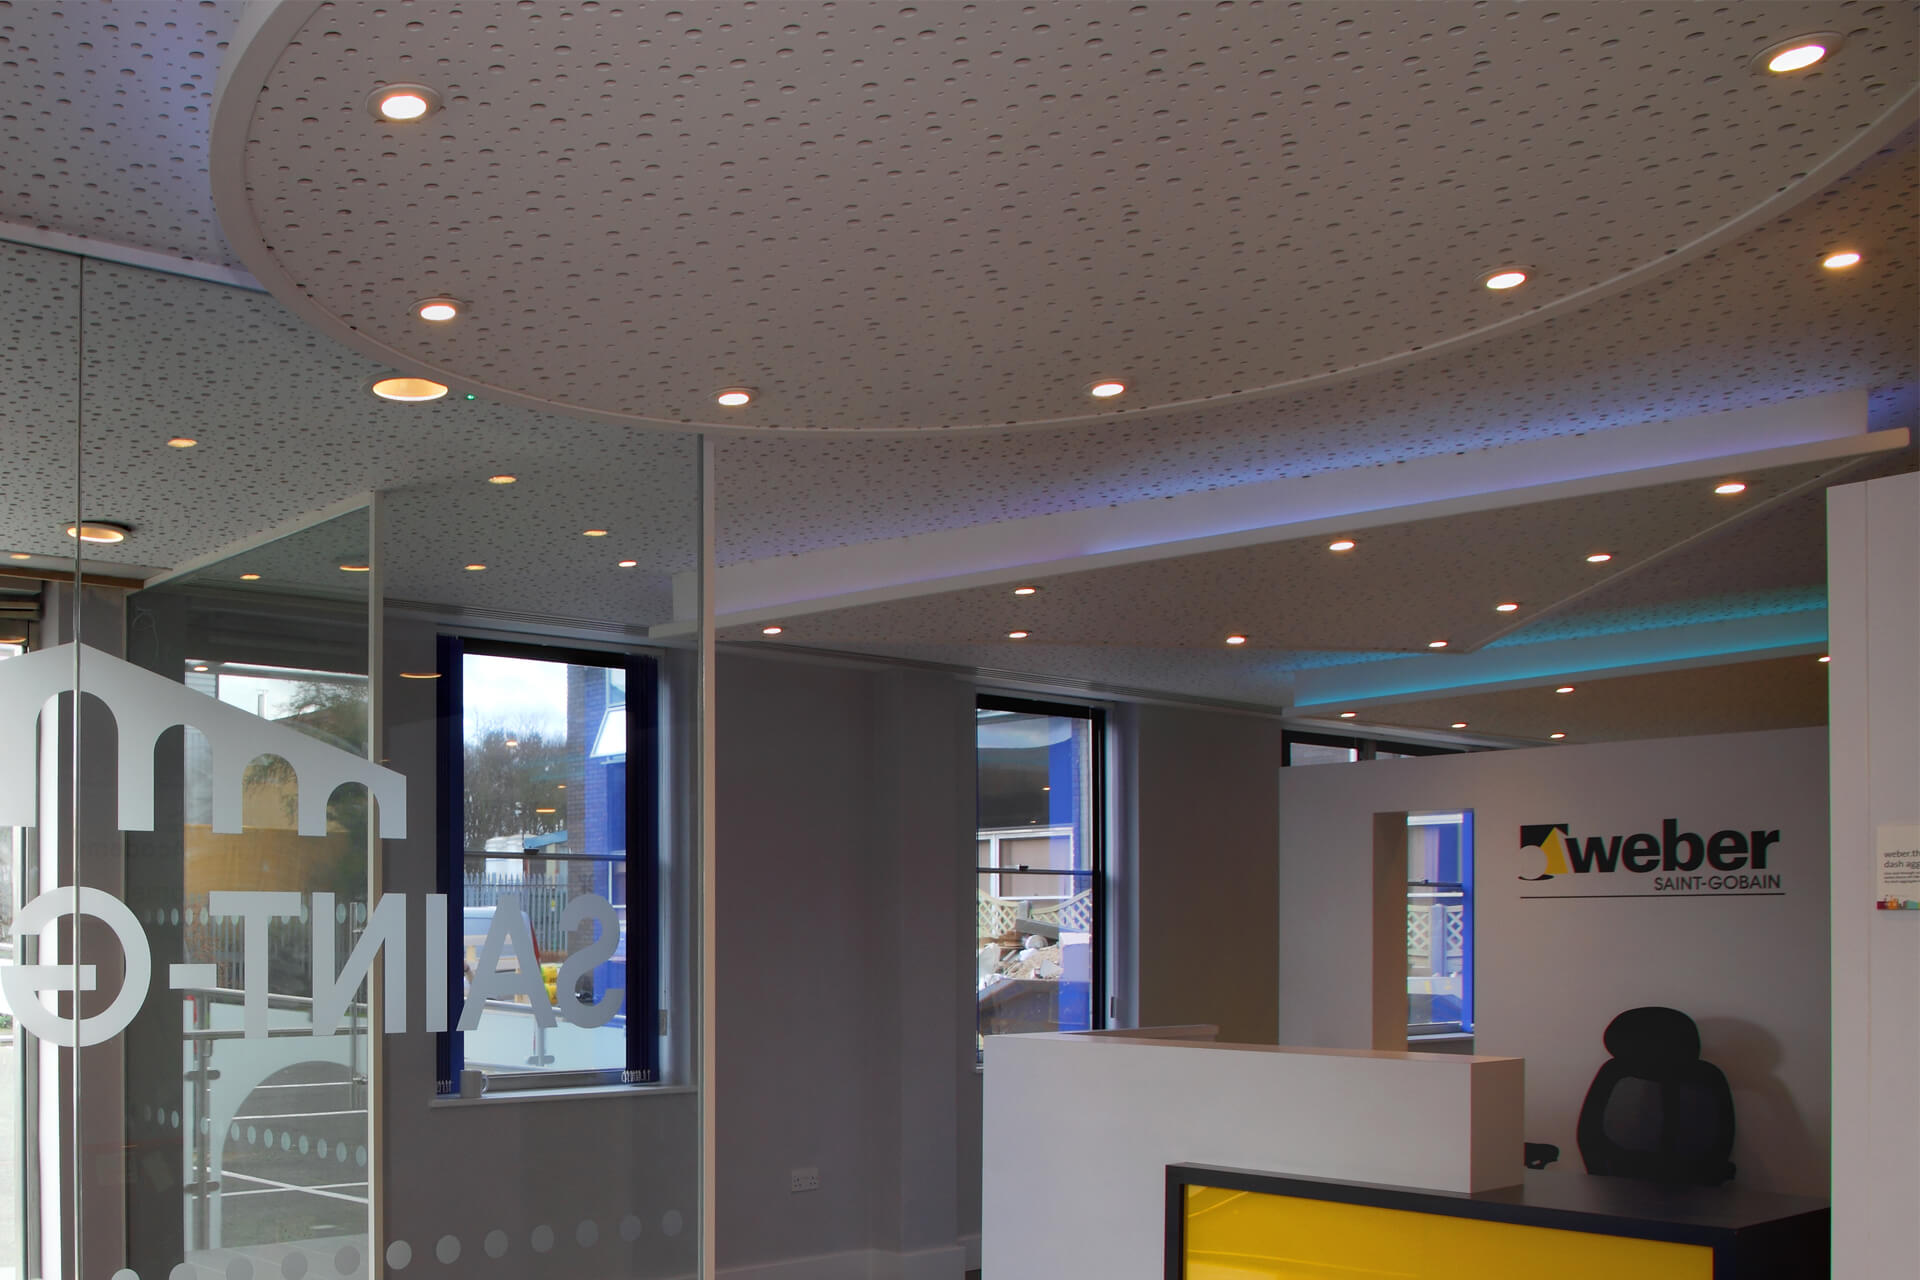 group dry contractors web ceilings installation m rpr and ceiling h uk hm suspended london lining